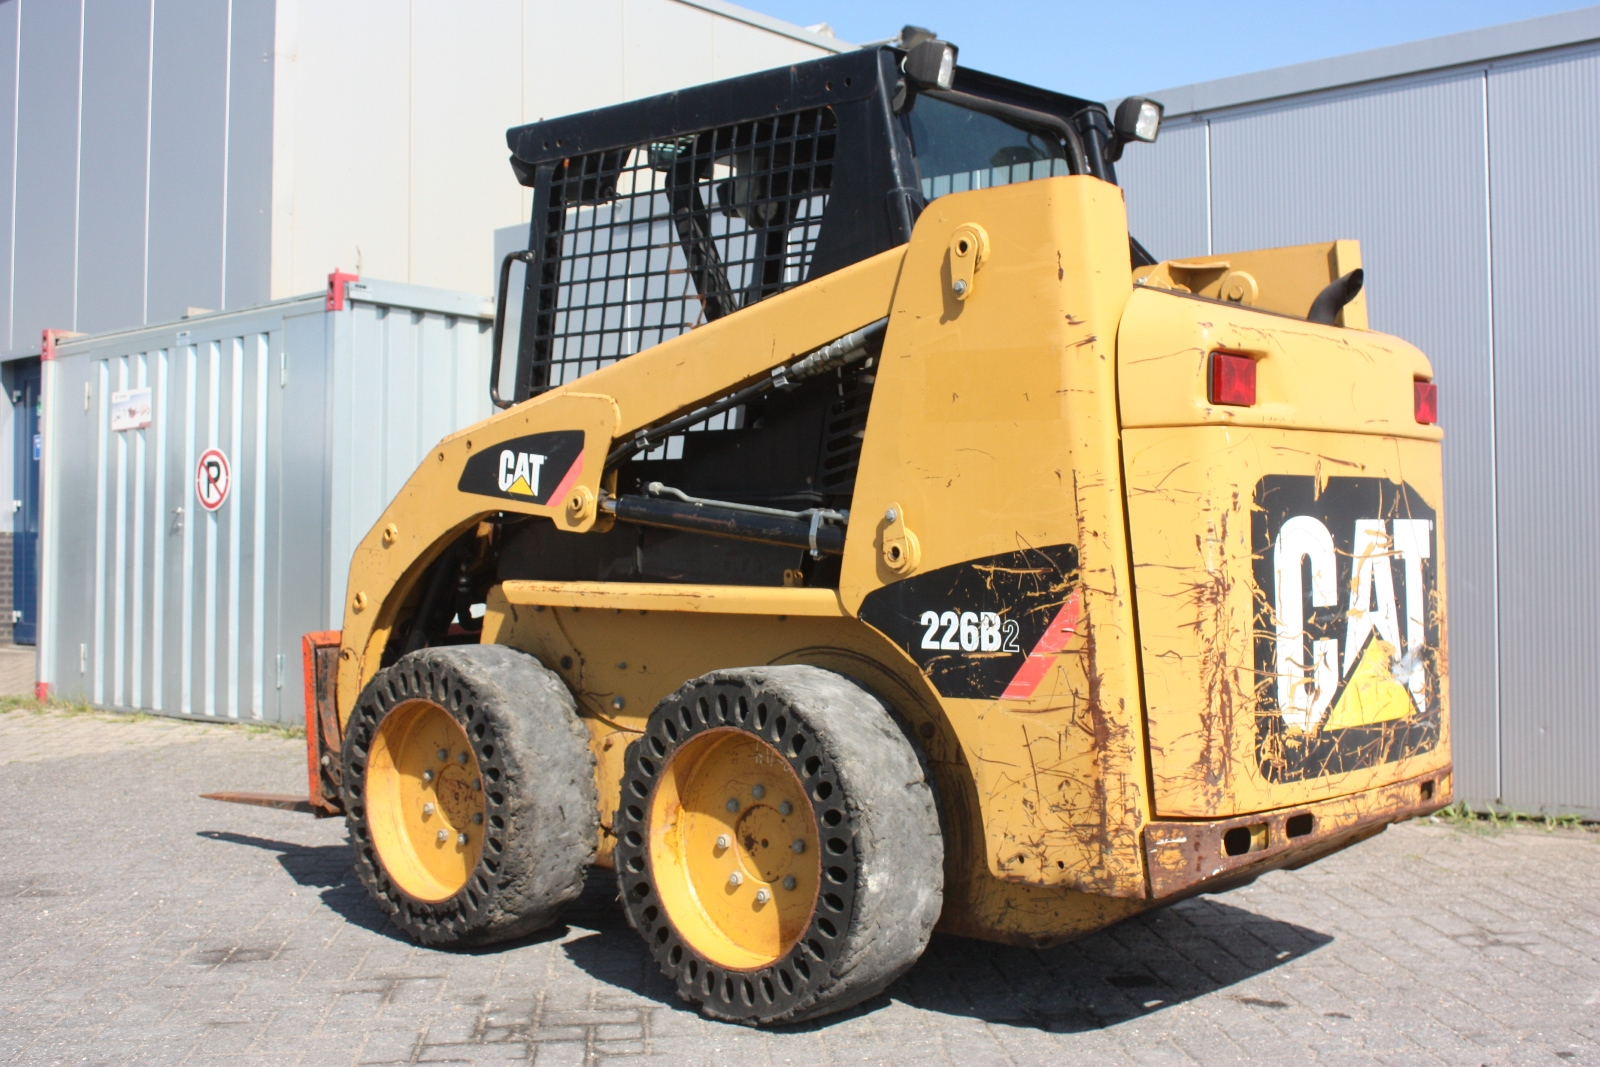 General At Tires >> CATERPILLAR 226B 2009 Loader Skidsteer | Van Dijk Heavy Equipment